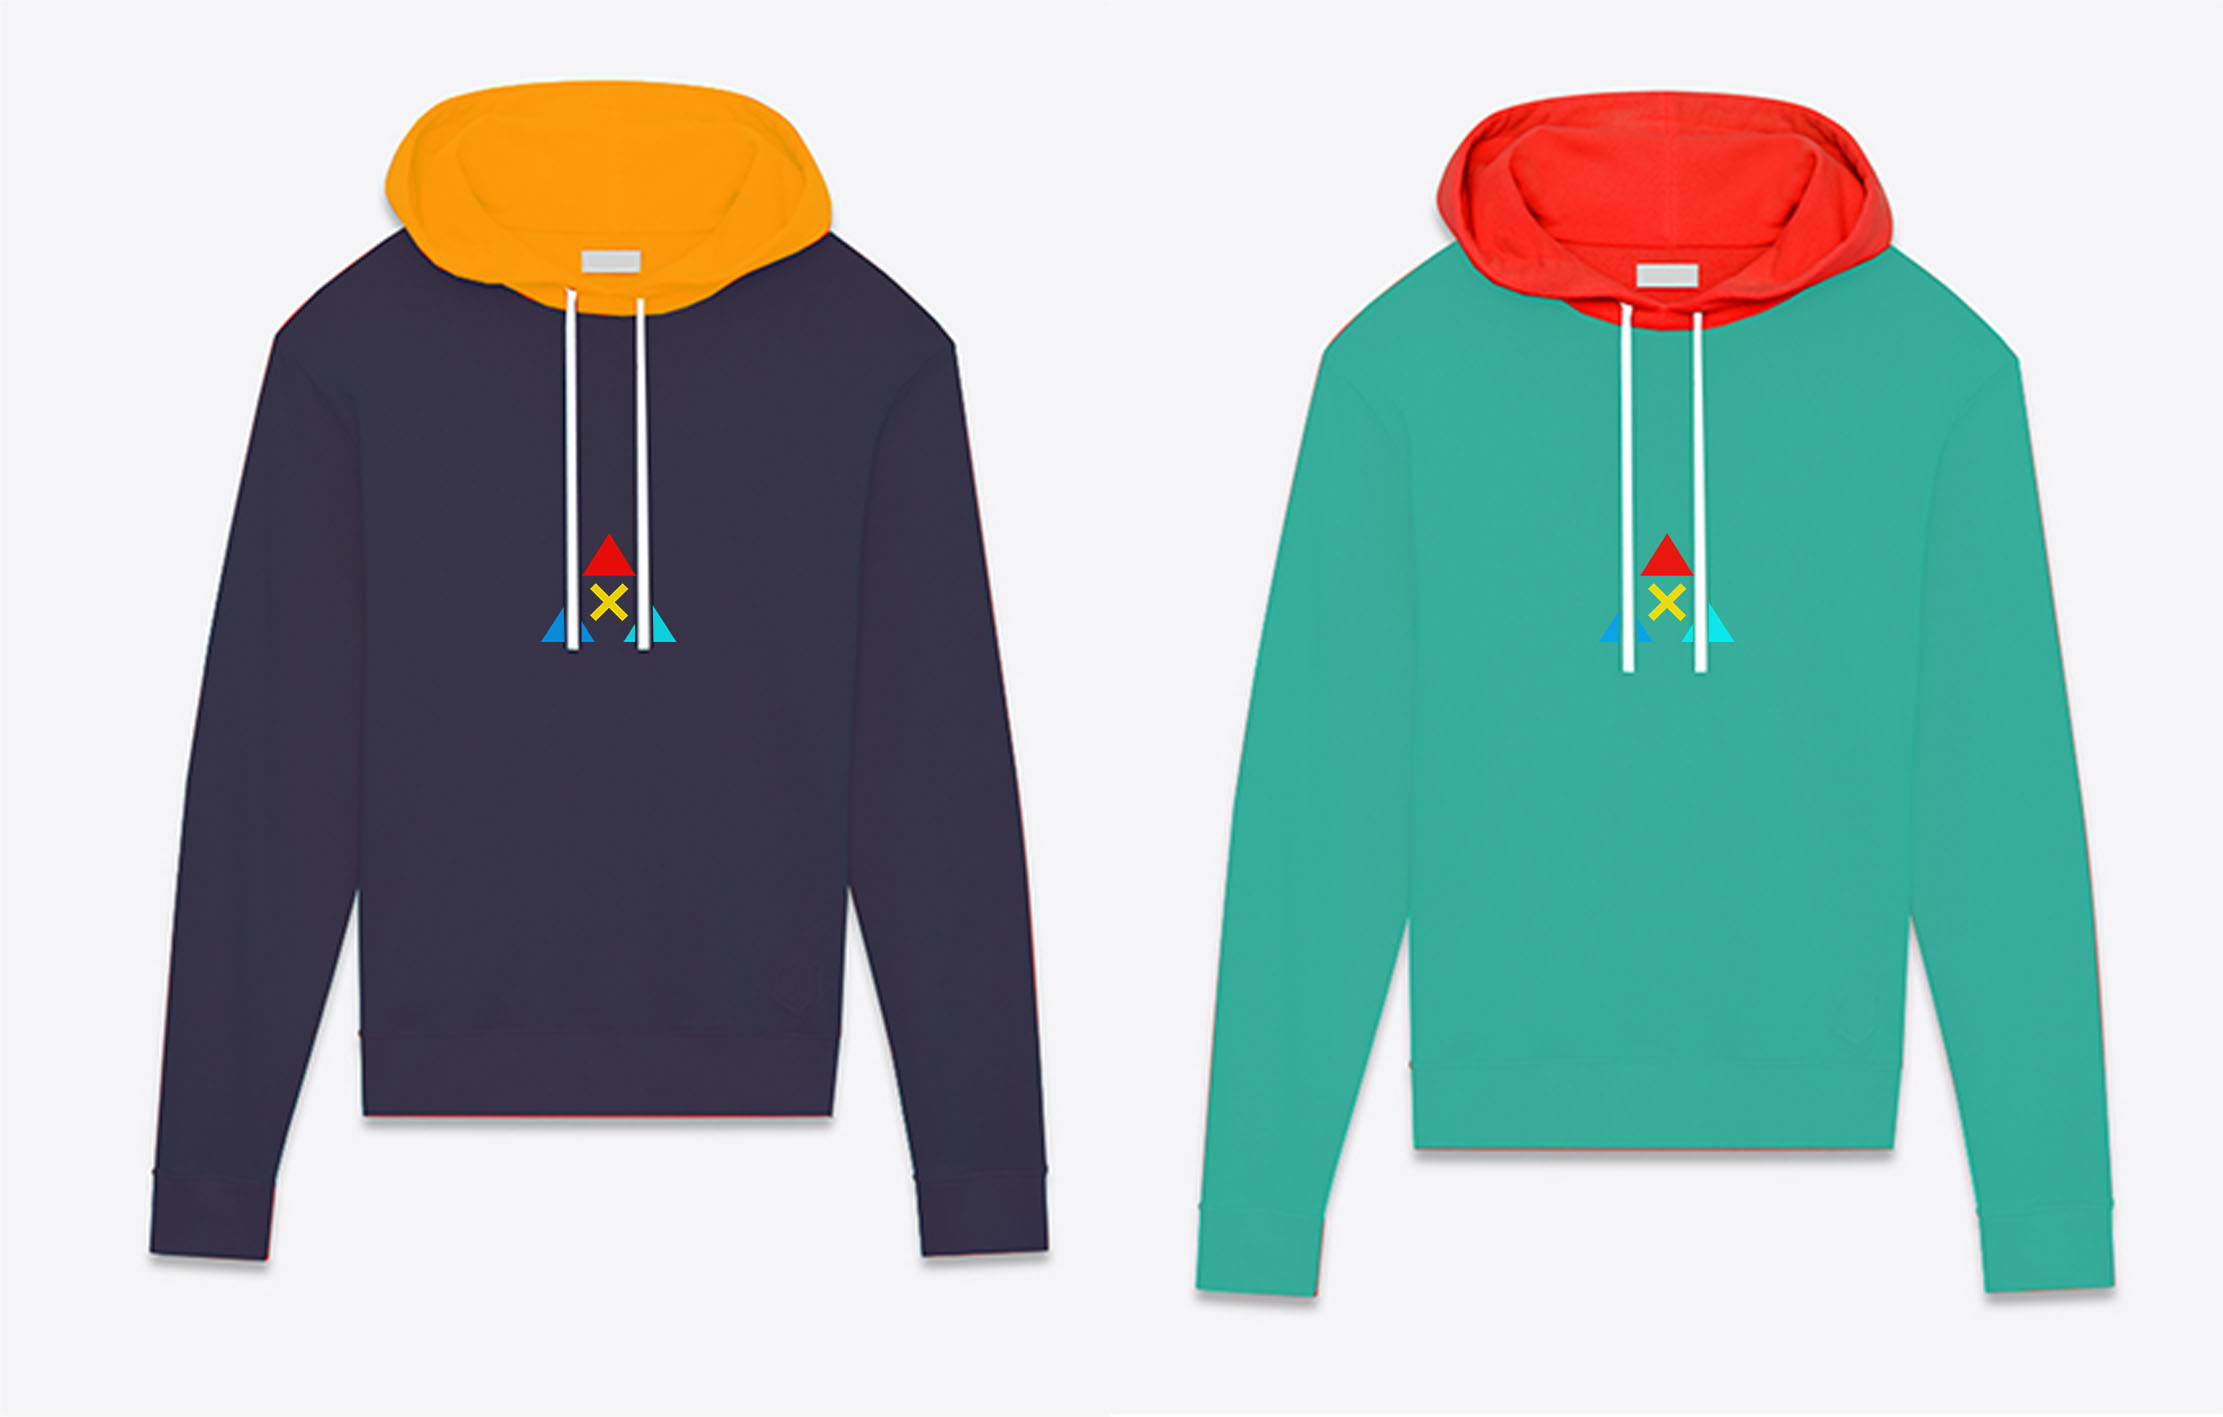 STUDIO THORAL  / Hoodies in Limited edition, Soon Online on STUDIO THORAL new e-concept store.